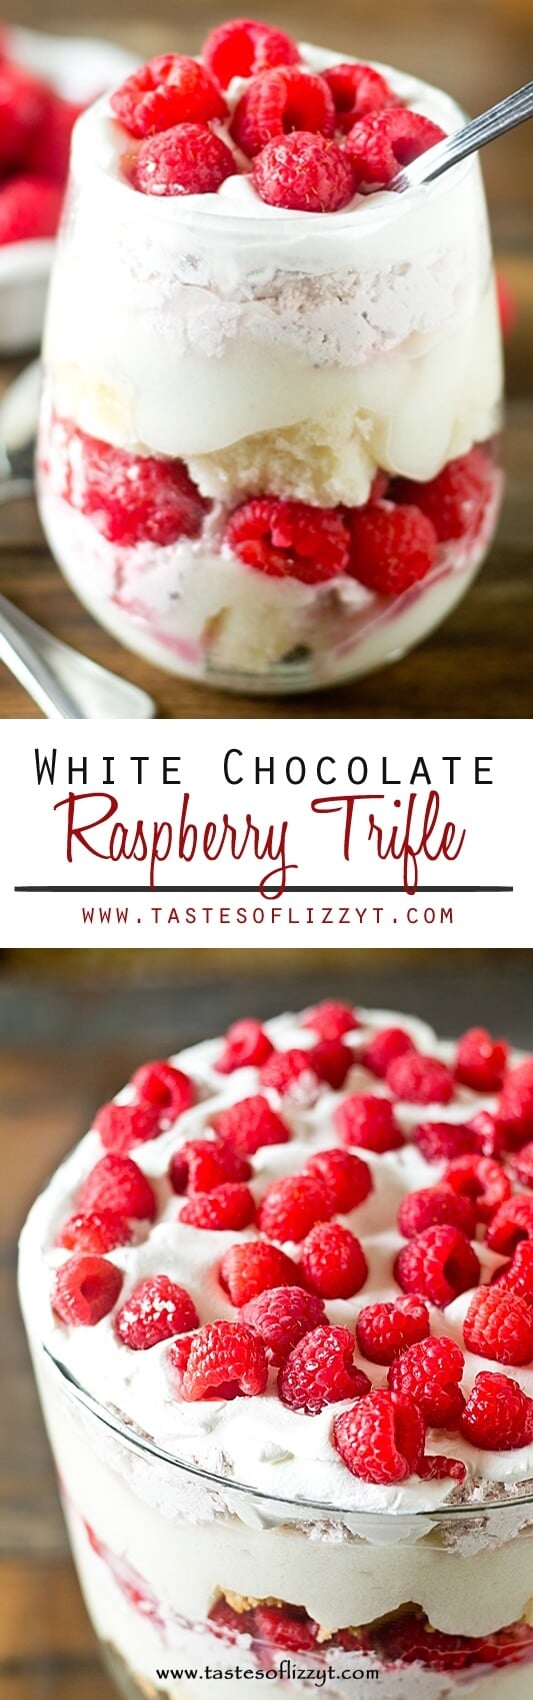 White Chocolate Raspberry Trifle Recipe - Layers of cake, white ...